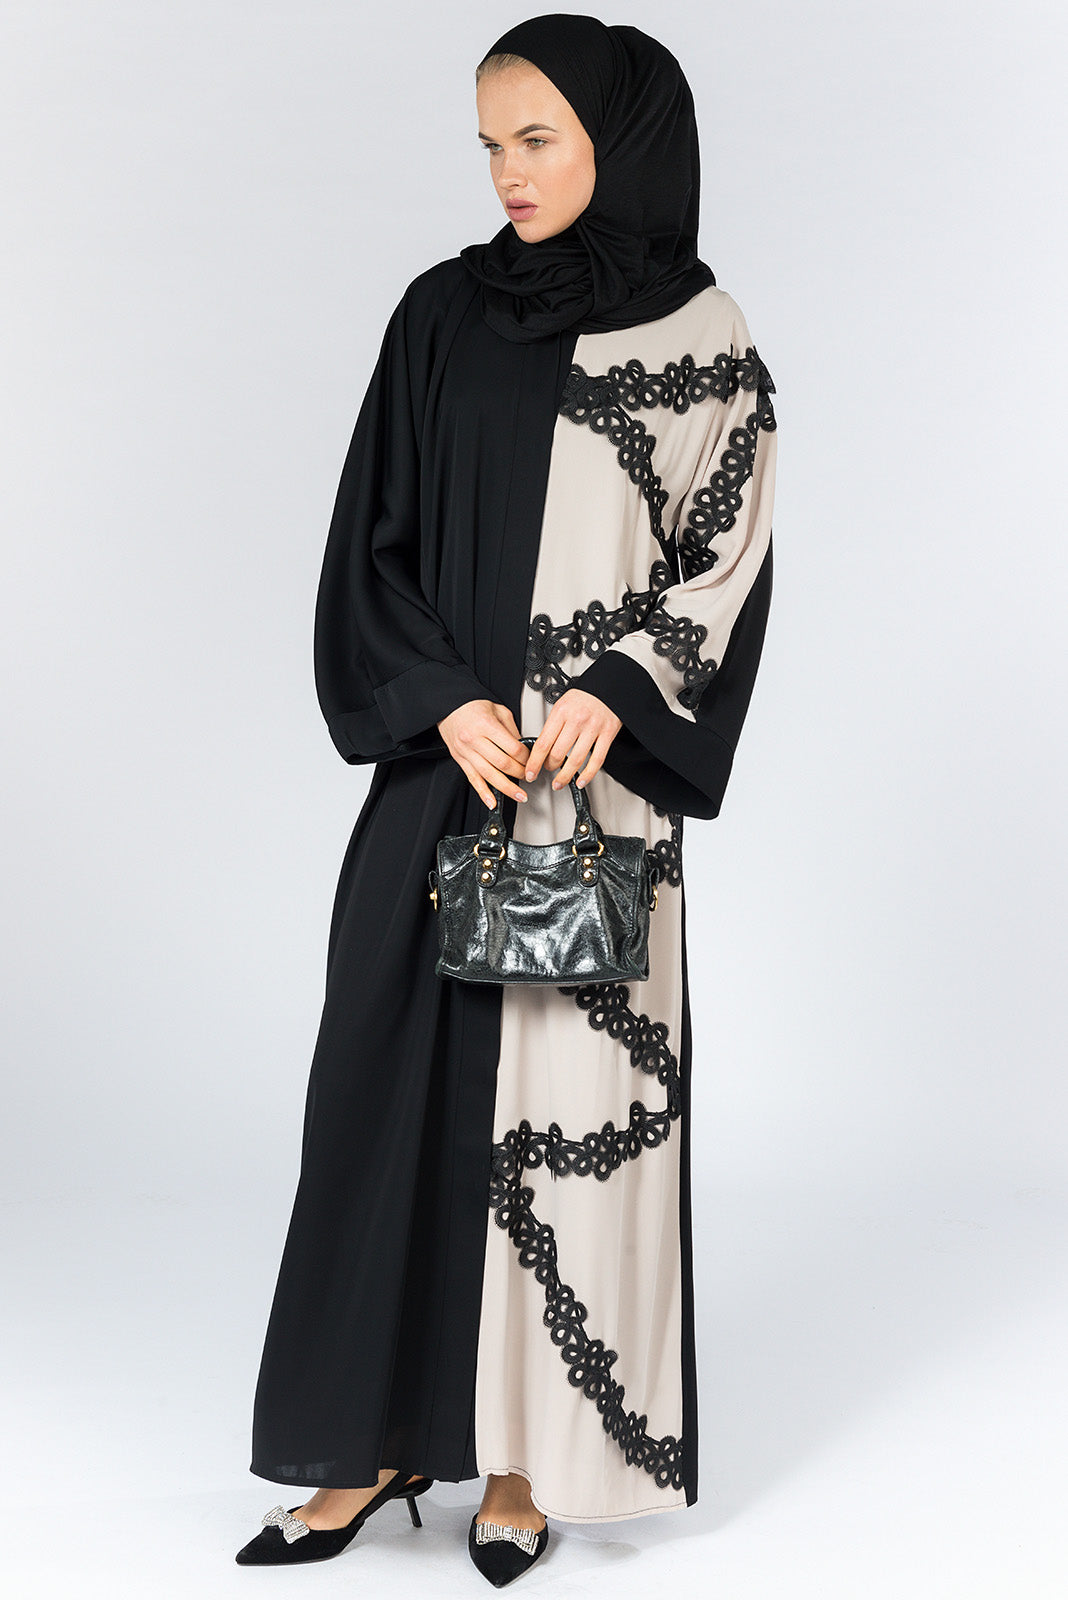 Feradje Black Closed Abaya with Beige Front and Lace in Nida